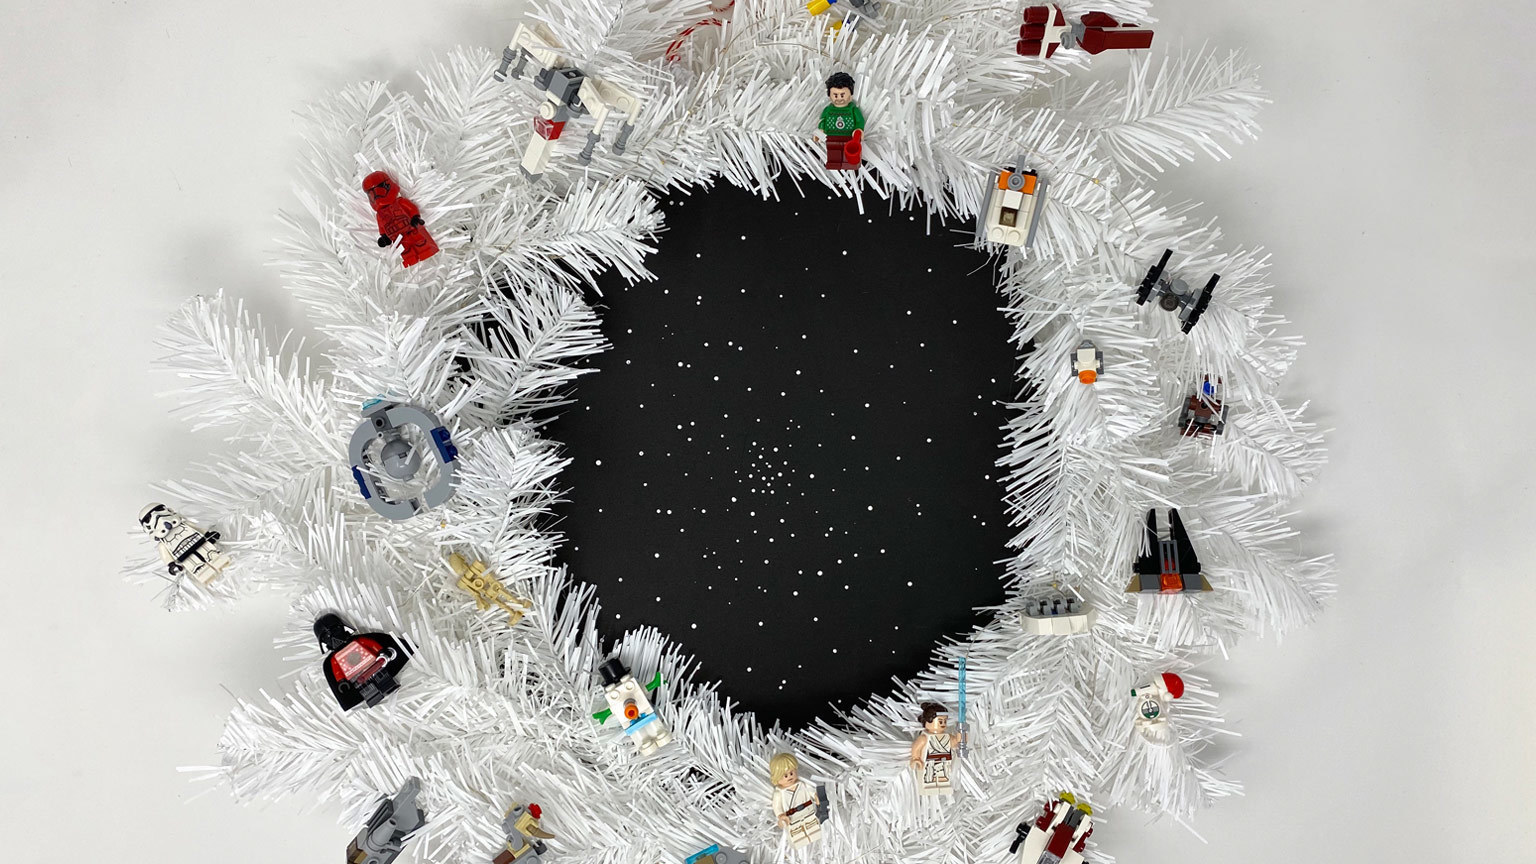 Build Happy Holiday Memories with a DIYLEGO Star Wars Holiday Special Wreath